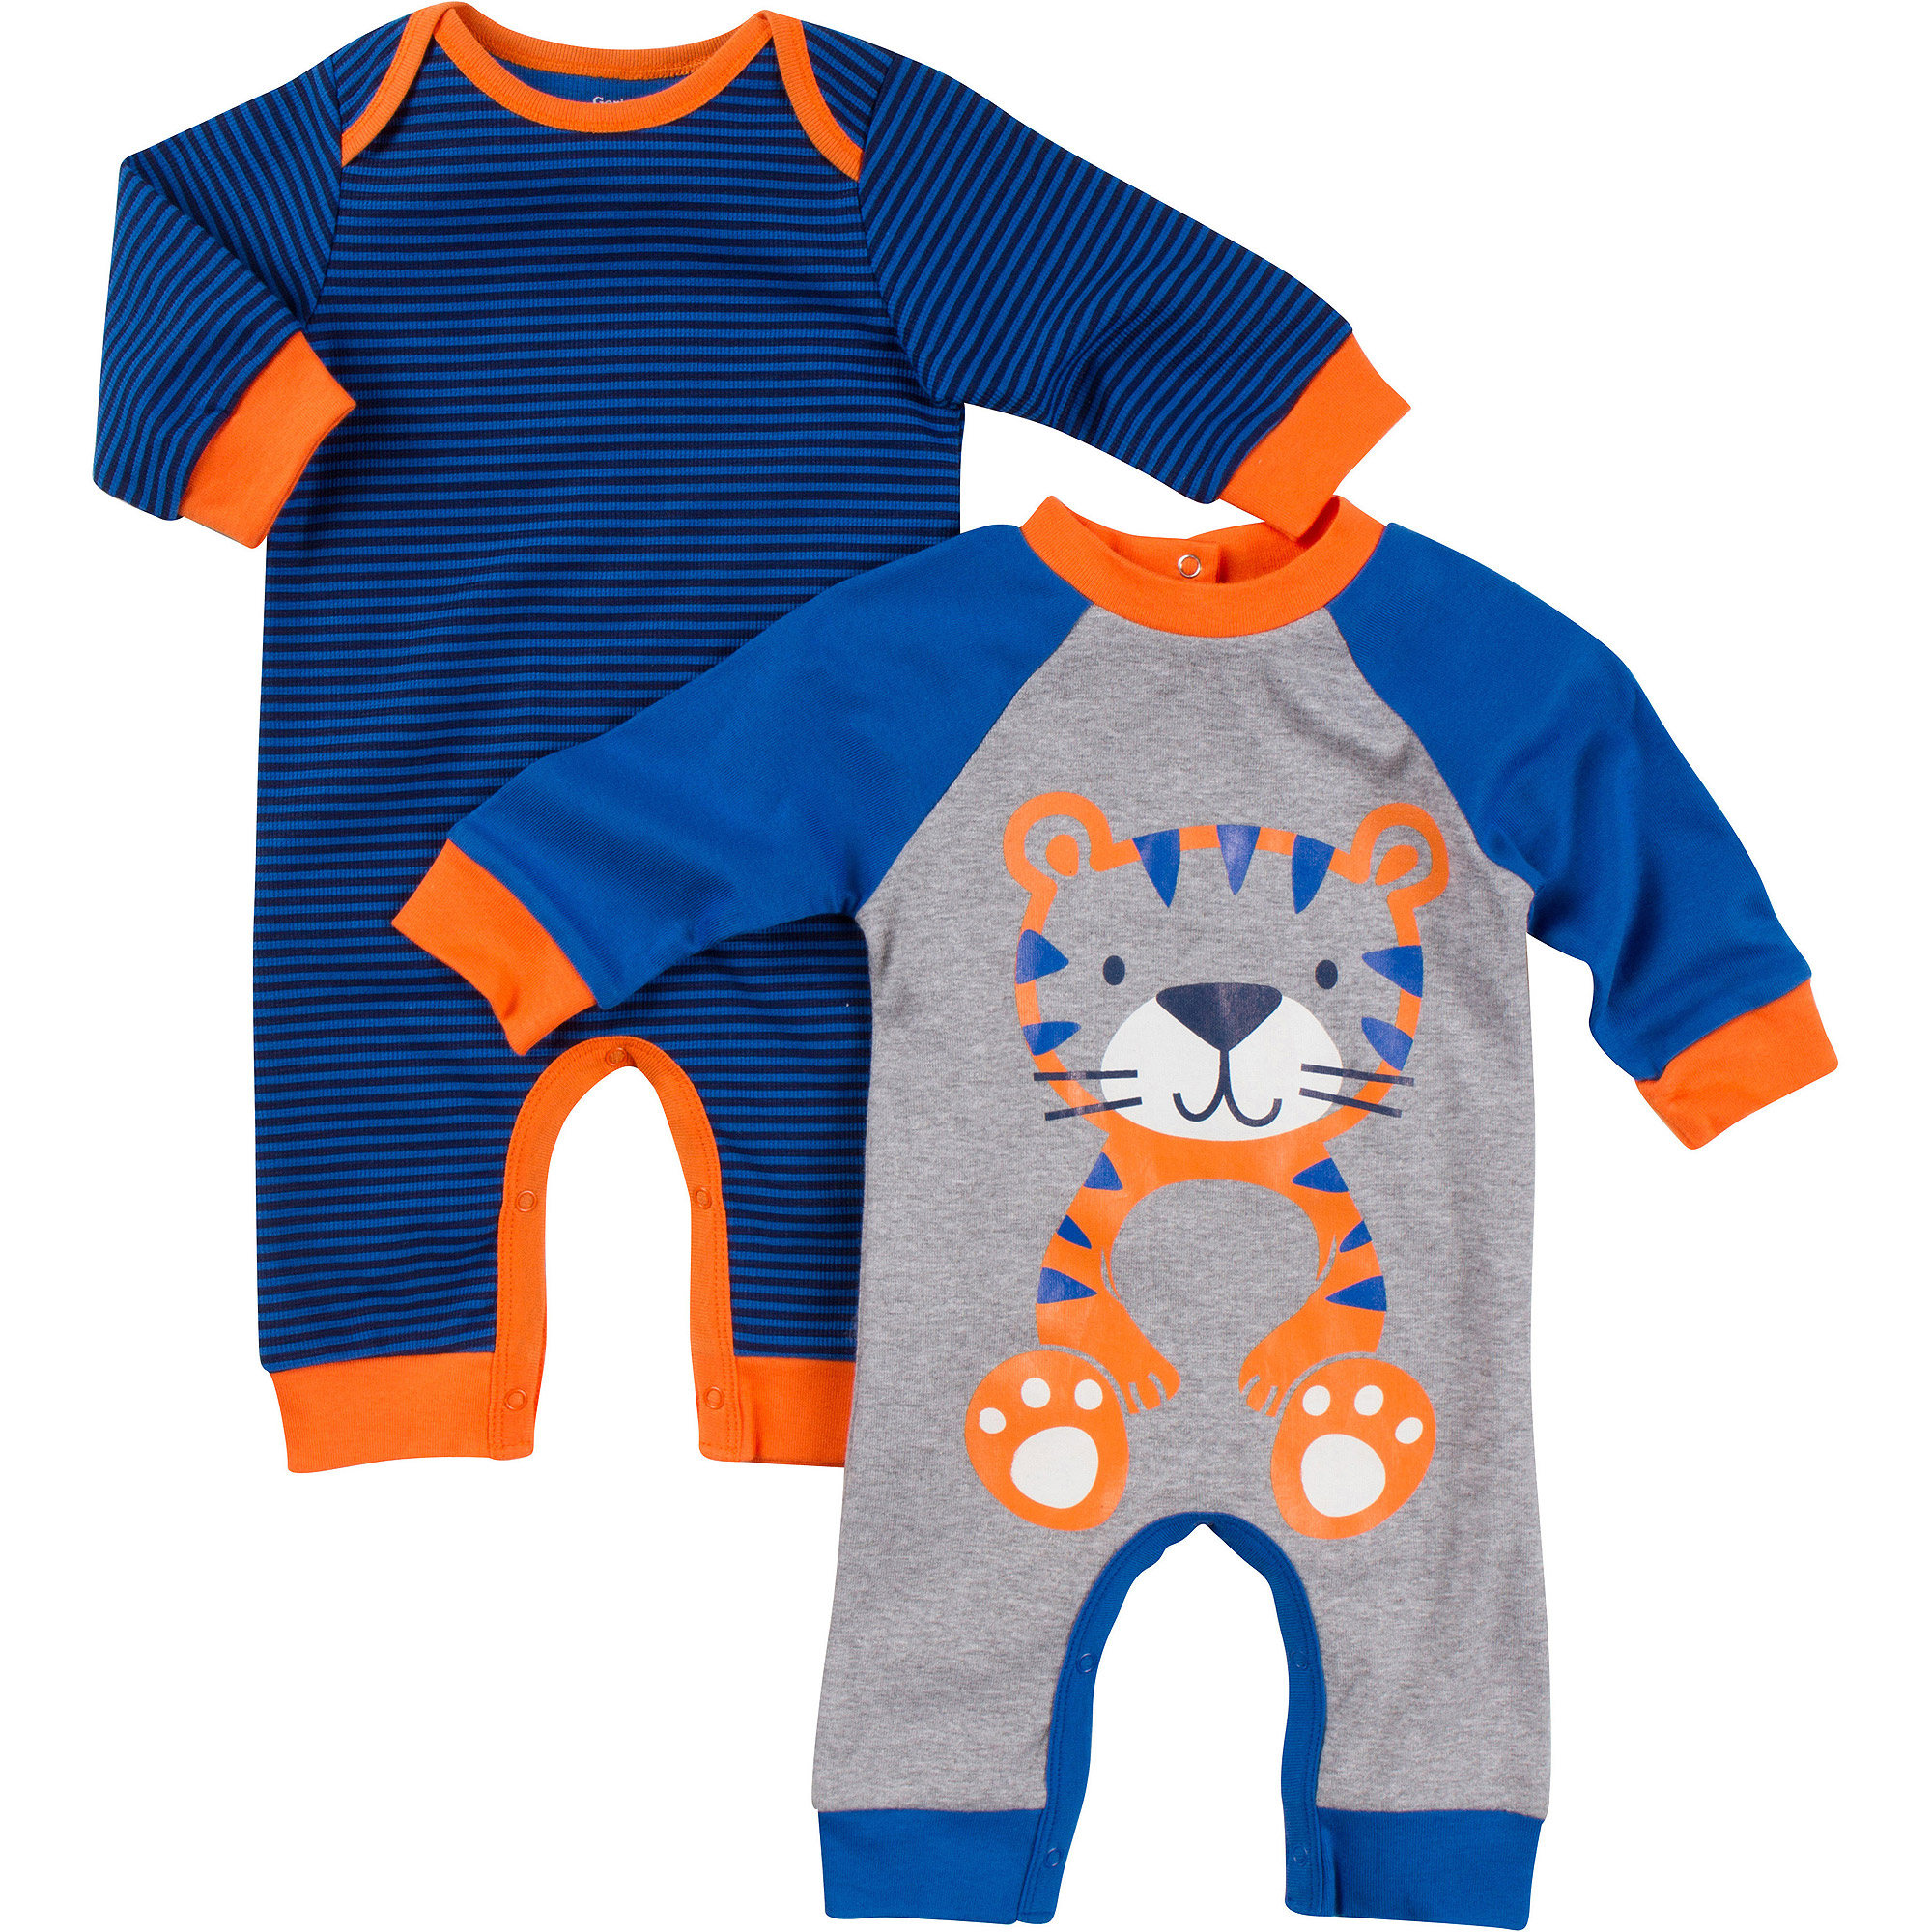 2pk Coverall Boy Nb- Tiger